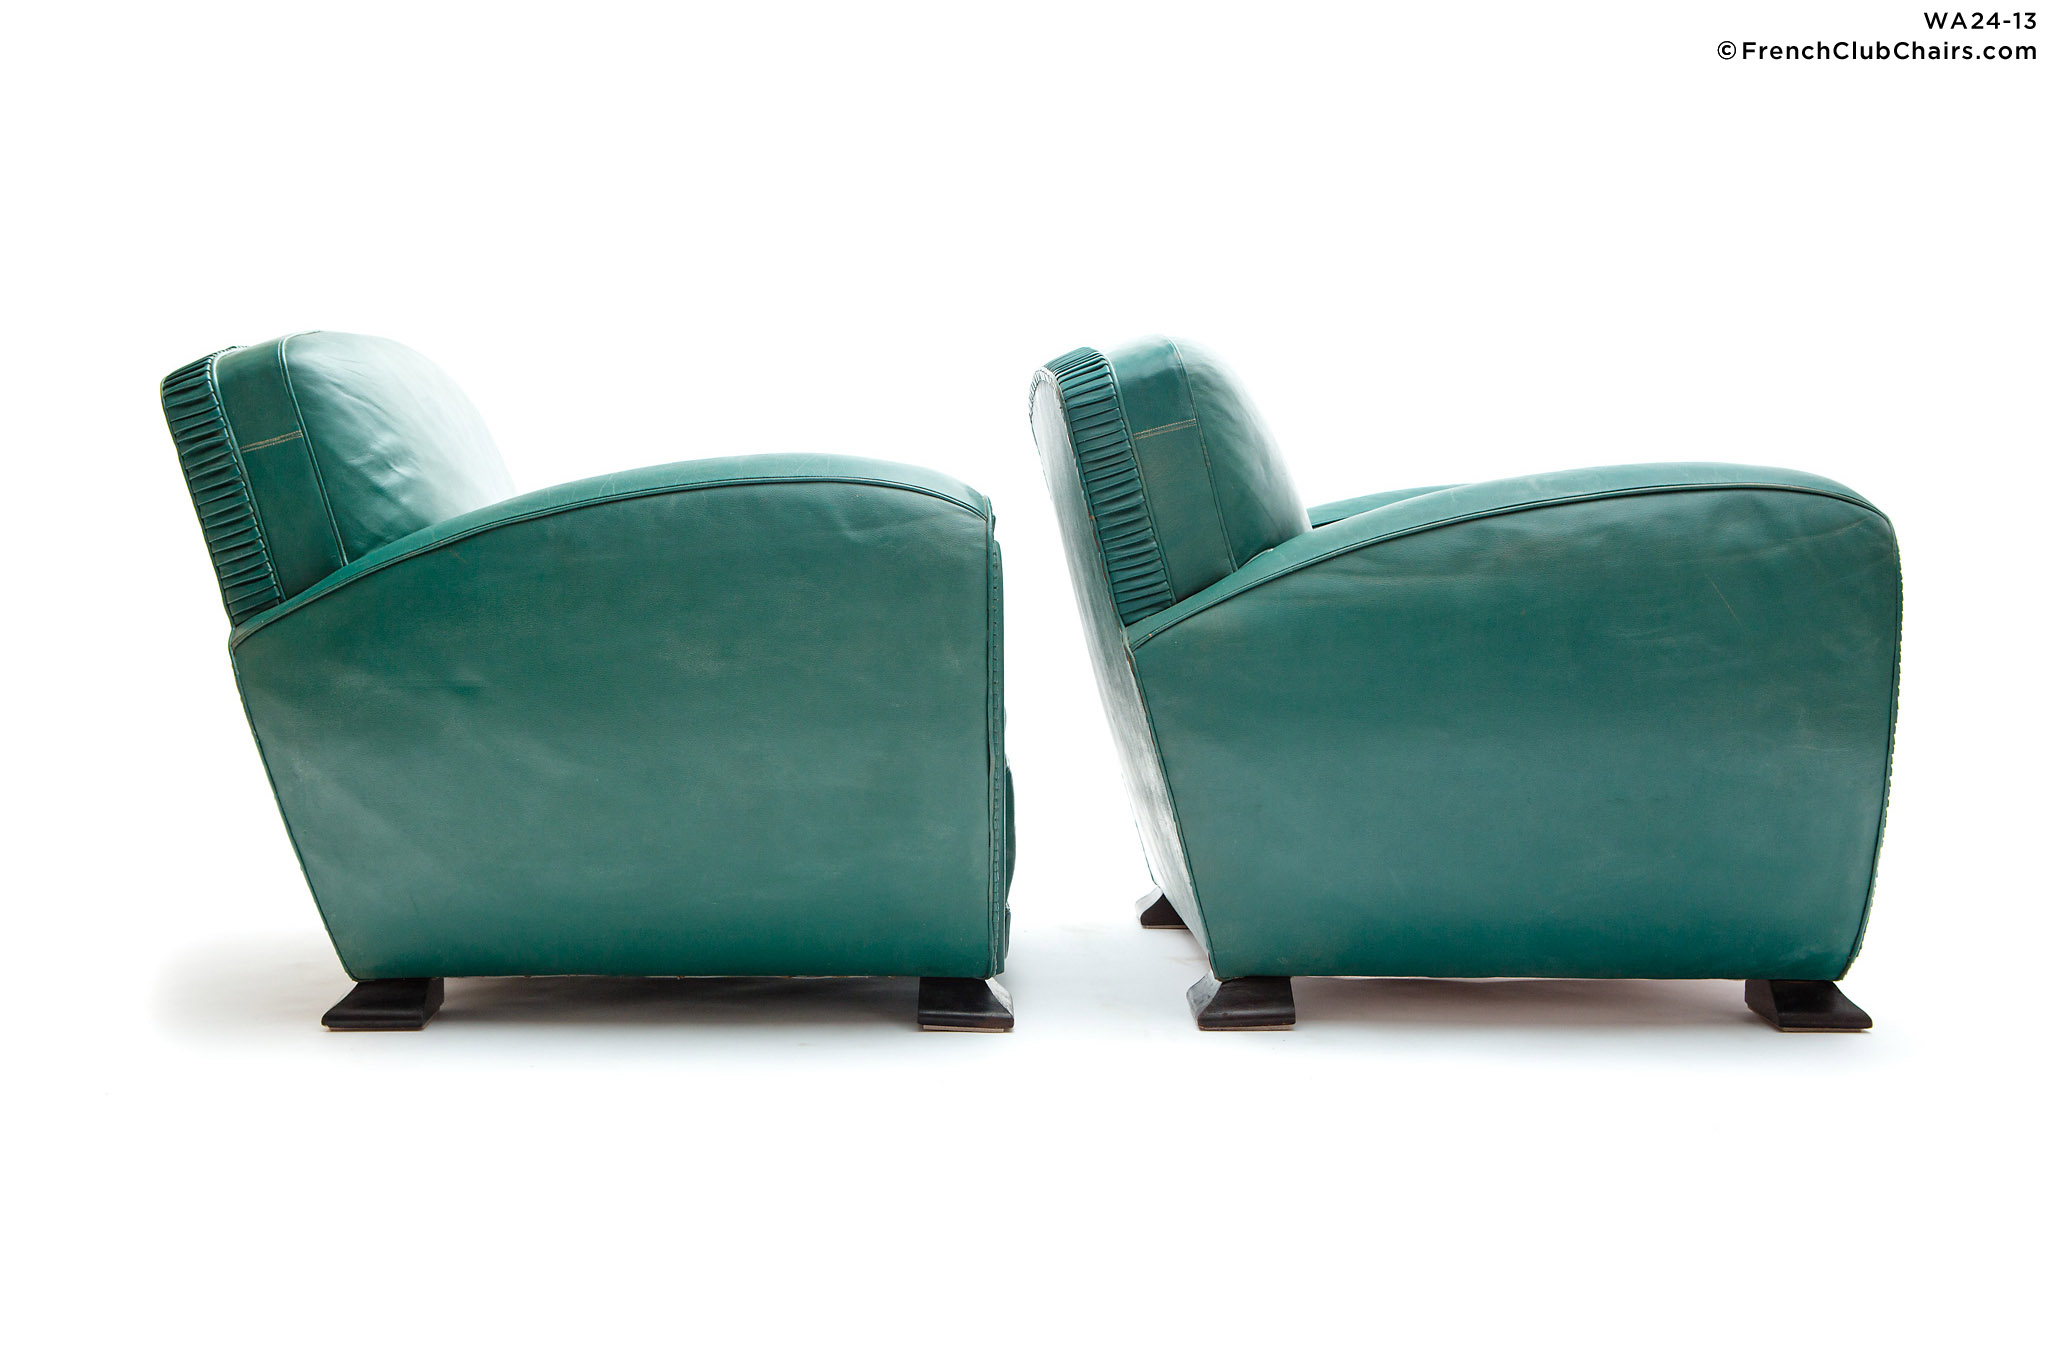 WA24-13_ERTONGREENDECO_W_3RT-v01-williams-antiks-leather-french-club-chair-wa_fcccom_w